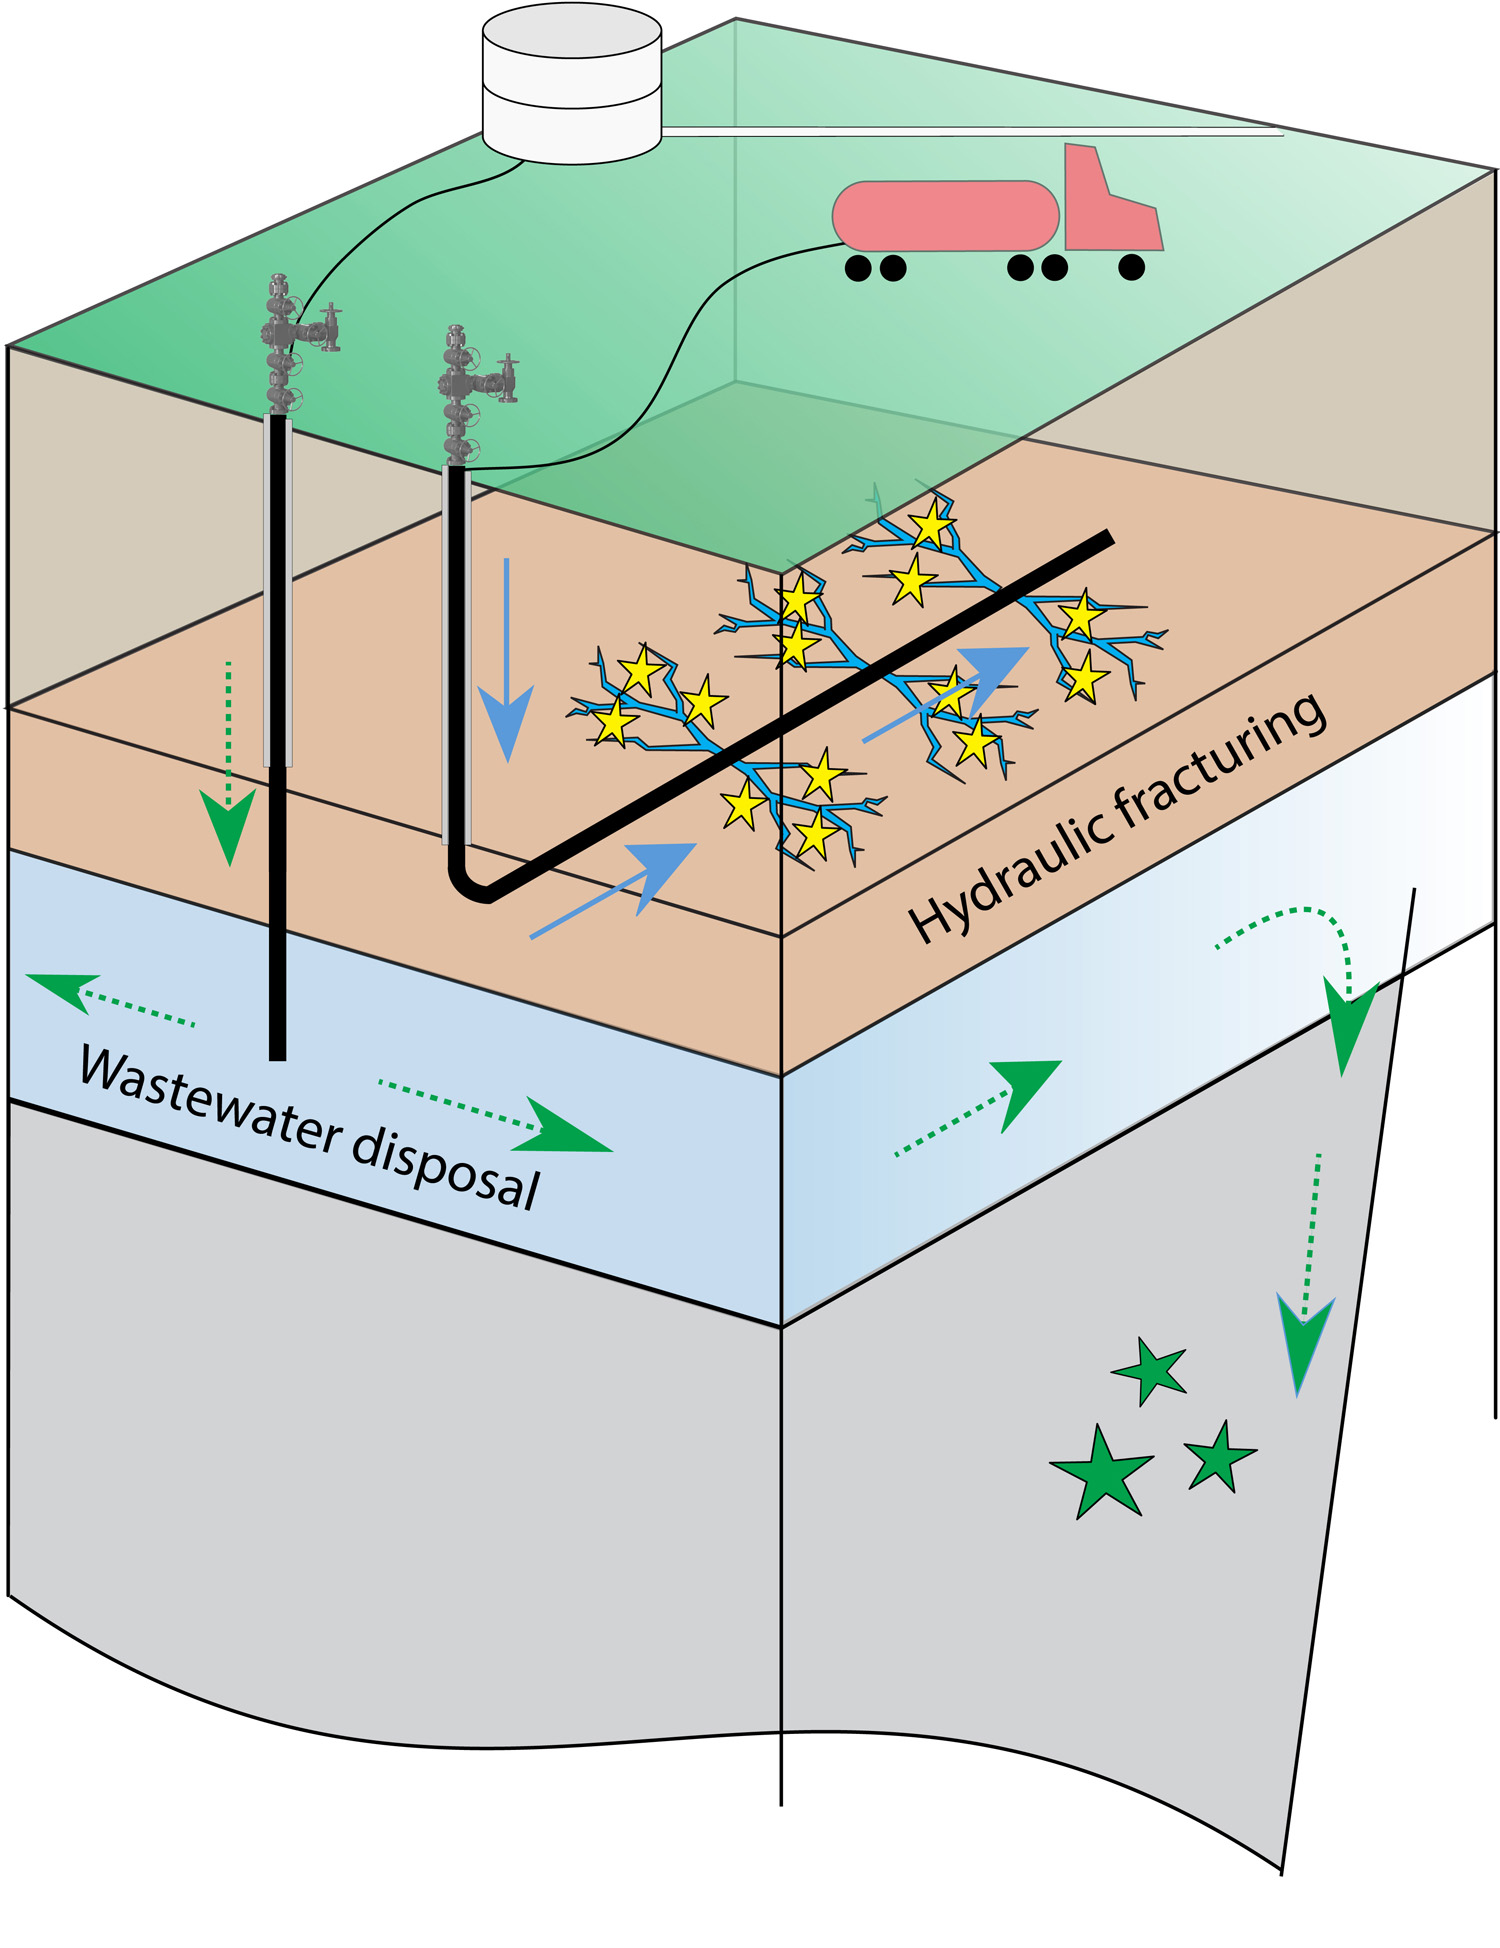 Small earthquakes (yellow stars) can be induced during hydraulic fracturing when high-pressure fluid (blue arrows) is pumped into horizontal wells to crack rock layers containing natural gas. Earthquakes (green stars) can also be induced by disposal of wastewater from gas and oil operations into deep vertical wells. Over time, the disposal layer migrates away from the well (dashed green arrows), destabilizing preexisting faults.